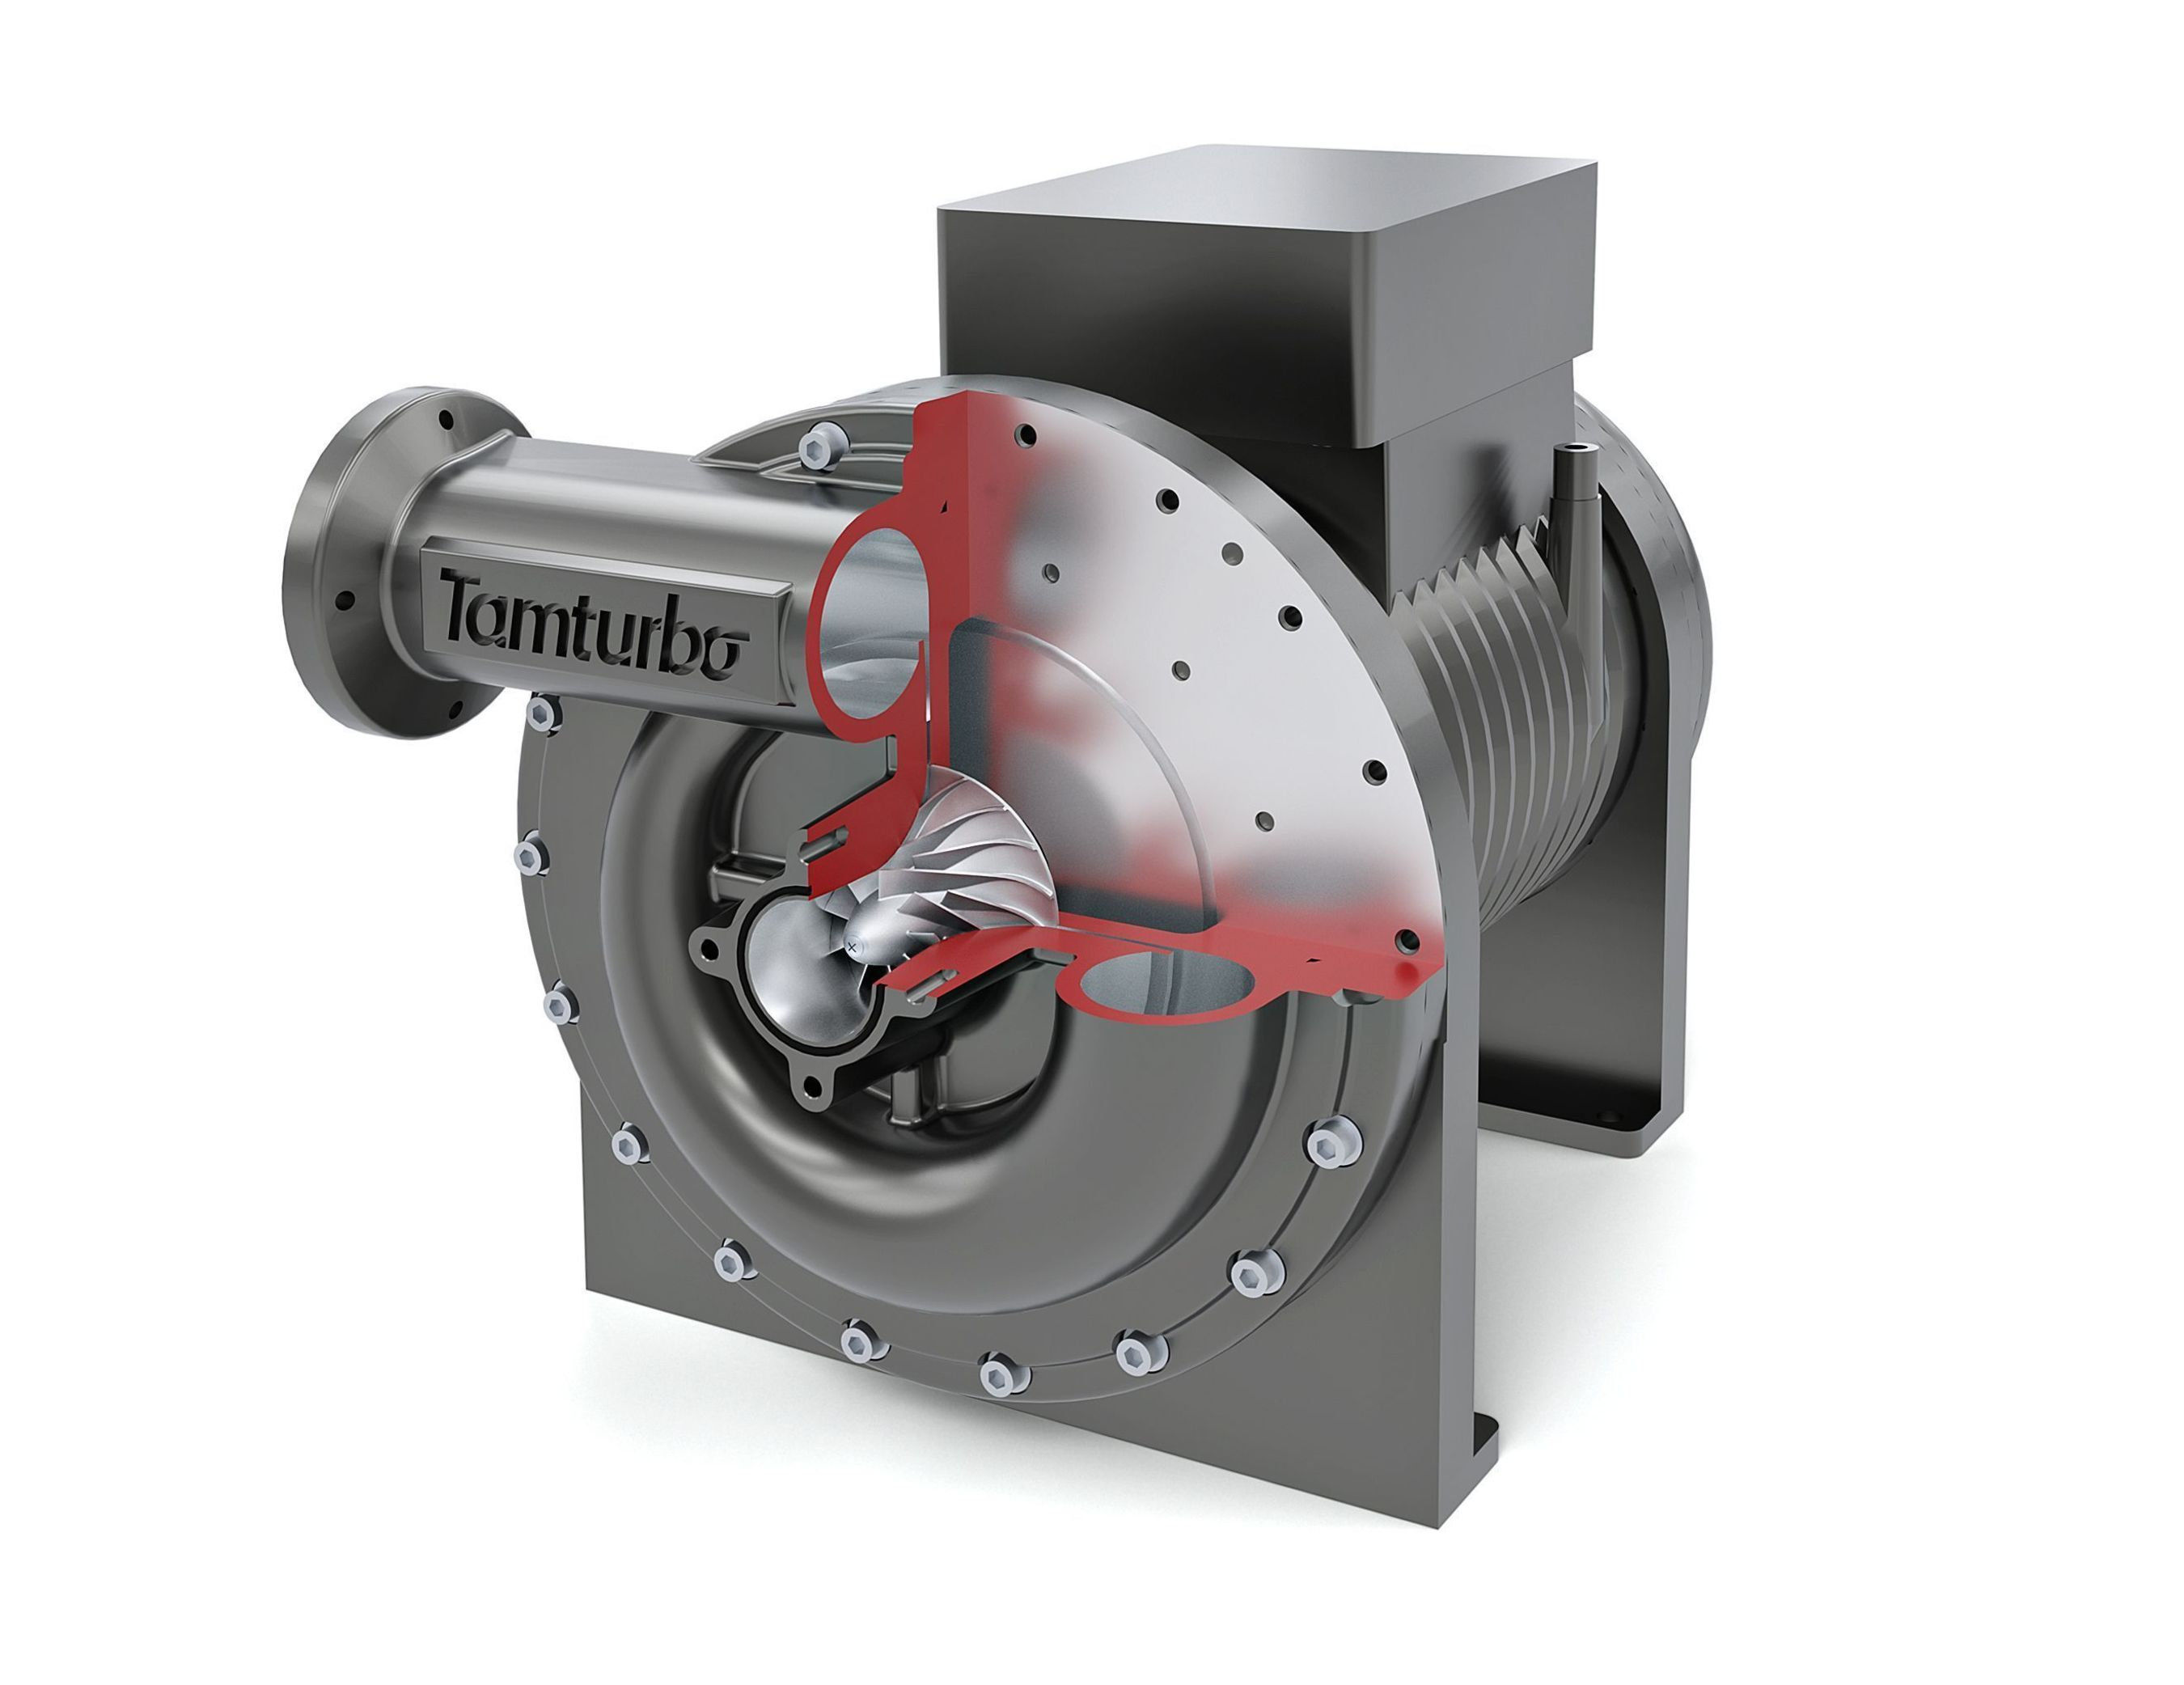 Tamturbo's direct drive, high-speed turbo compressor has raised unprecedentedly wide demand in the compressed air business worldwide. It confirms that the industry is experiencing its biggest technological change for decades. (PRNewsFoto/Tamburbo OY)